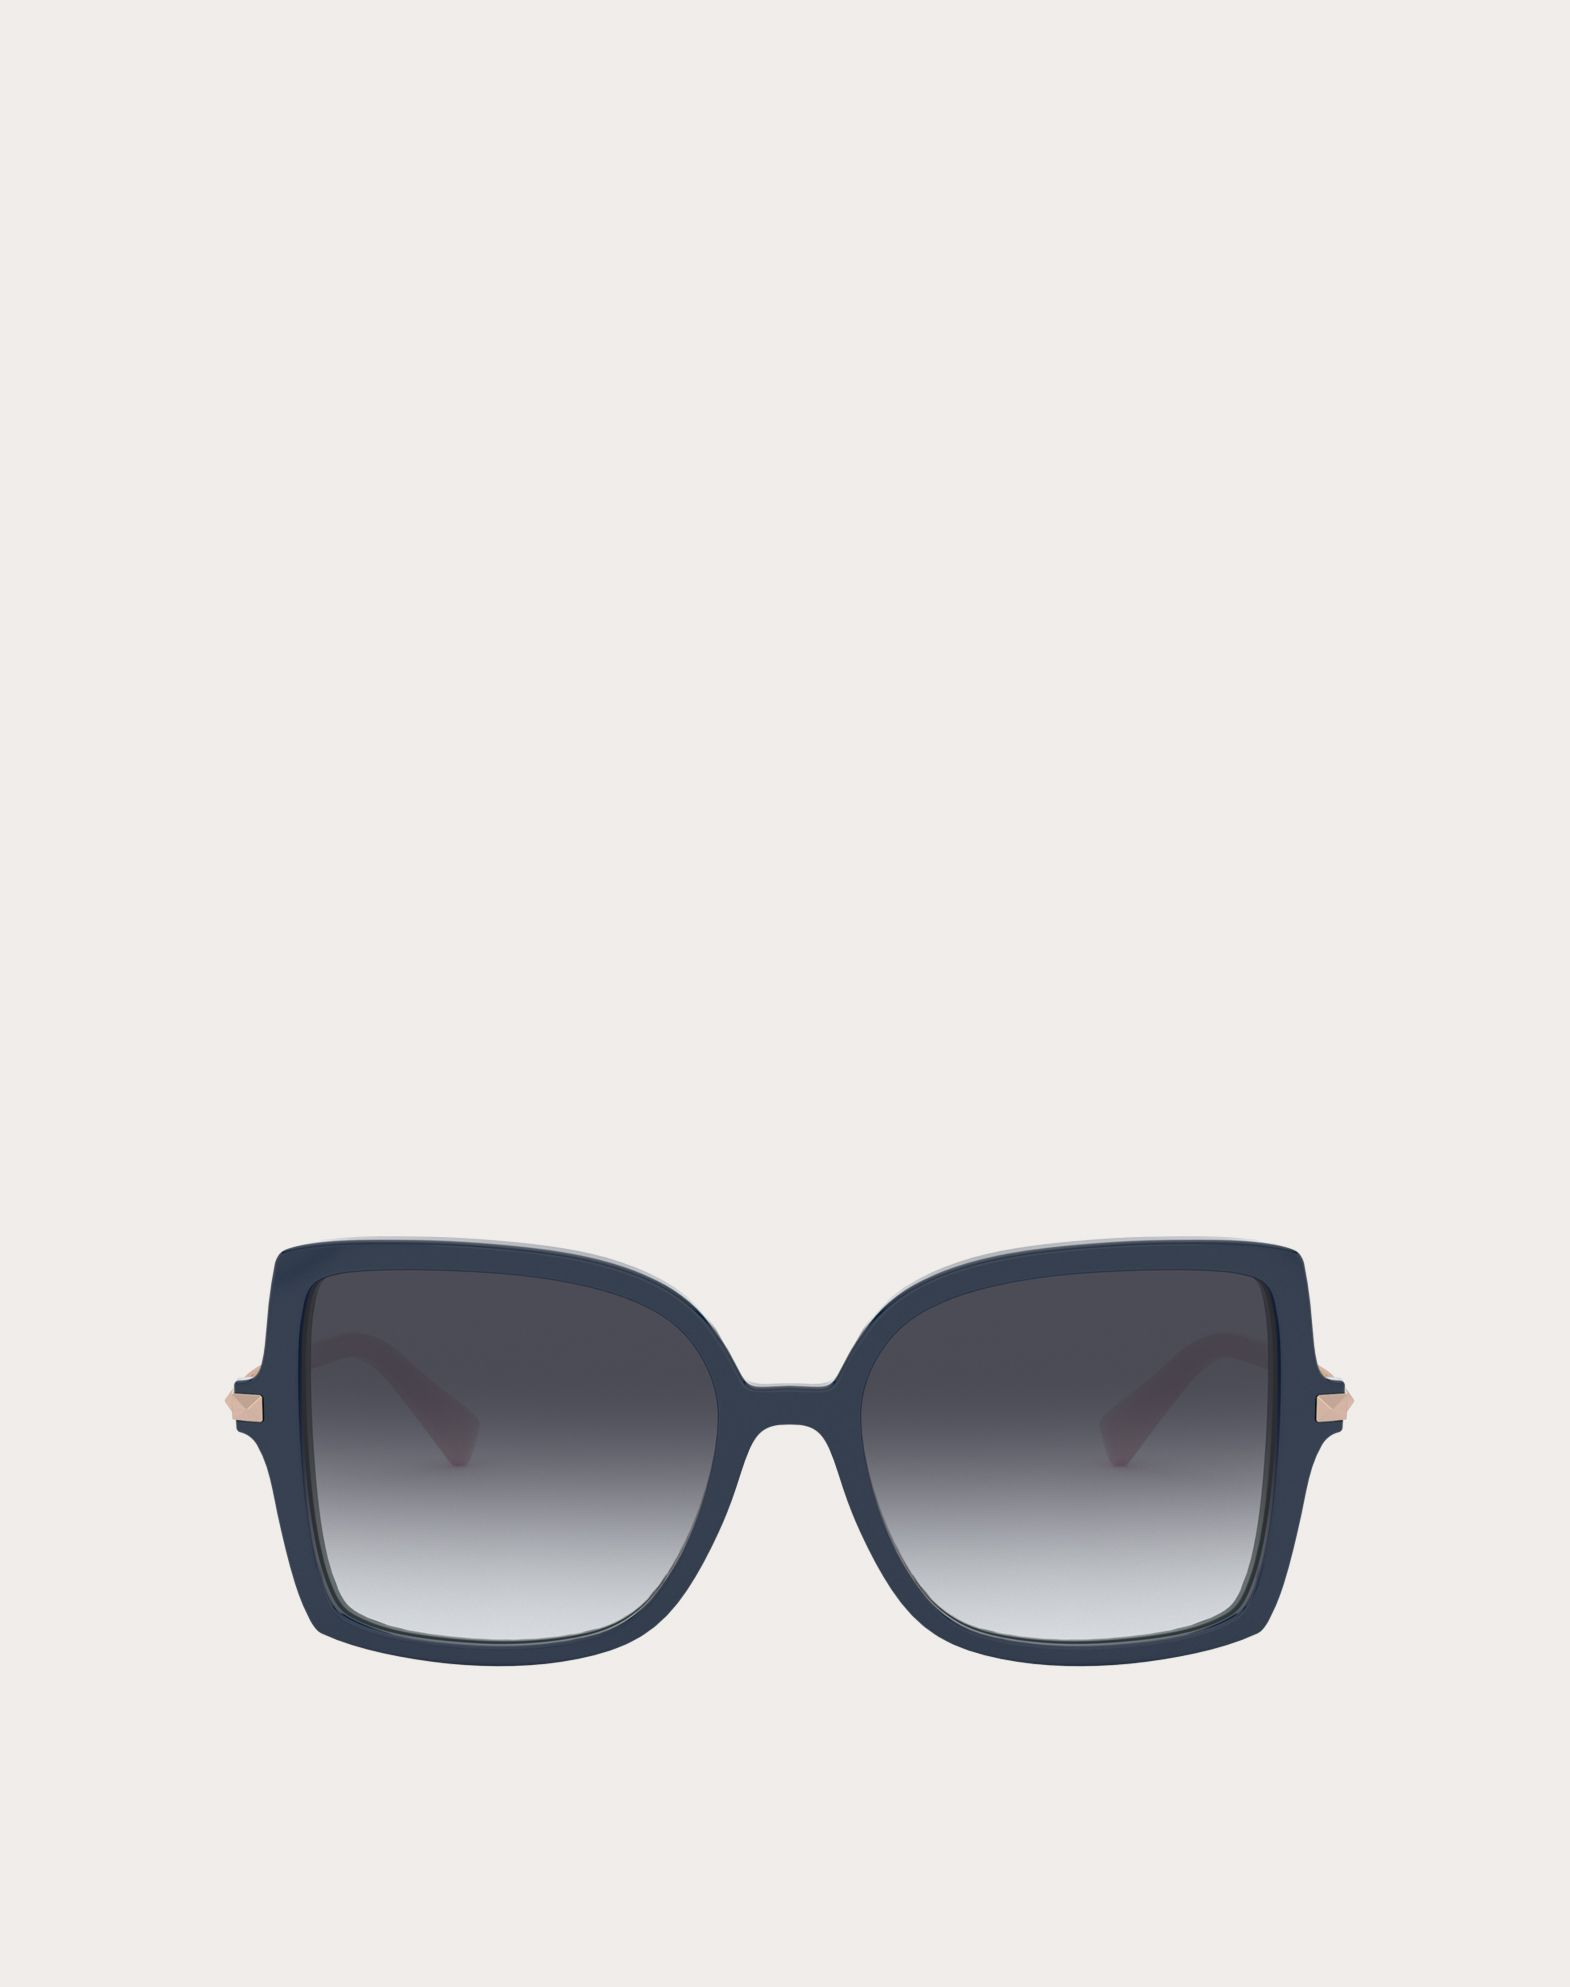 Valentino Occhiali Squared Acetate Frame With Studs In Blue/gradient Gray